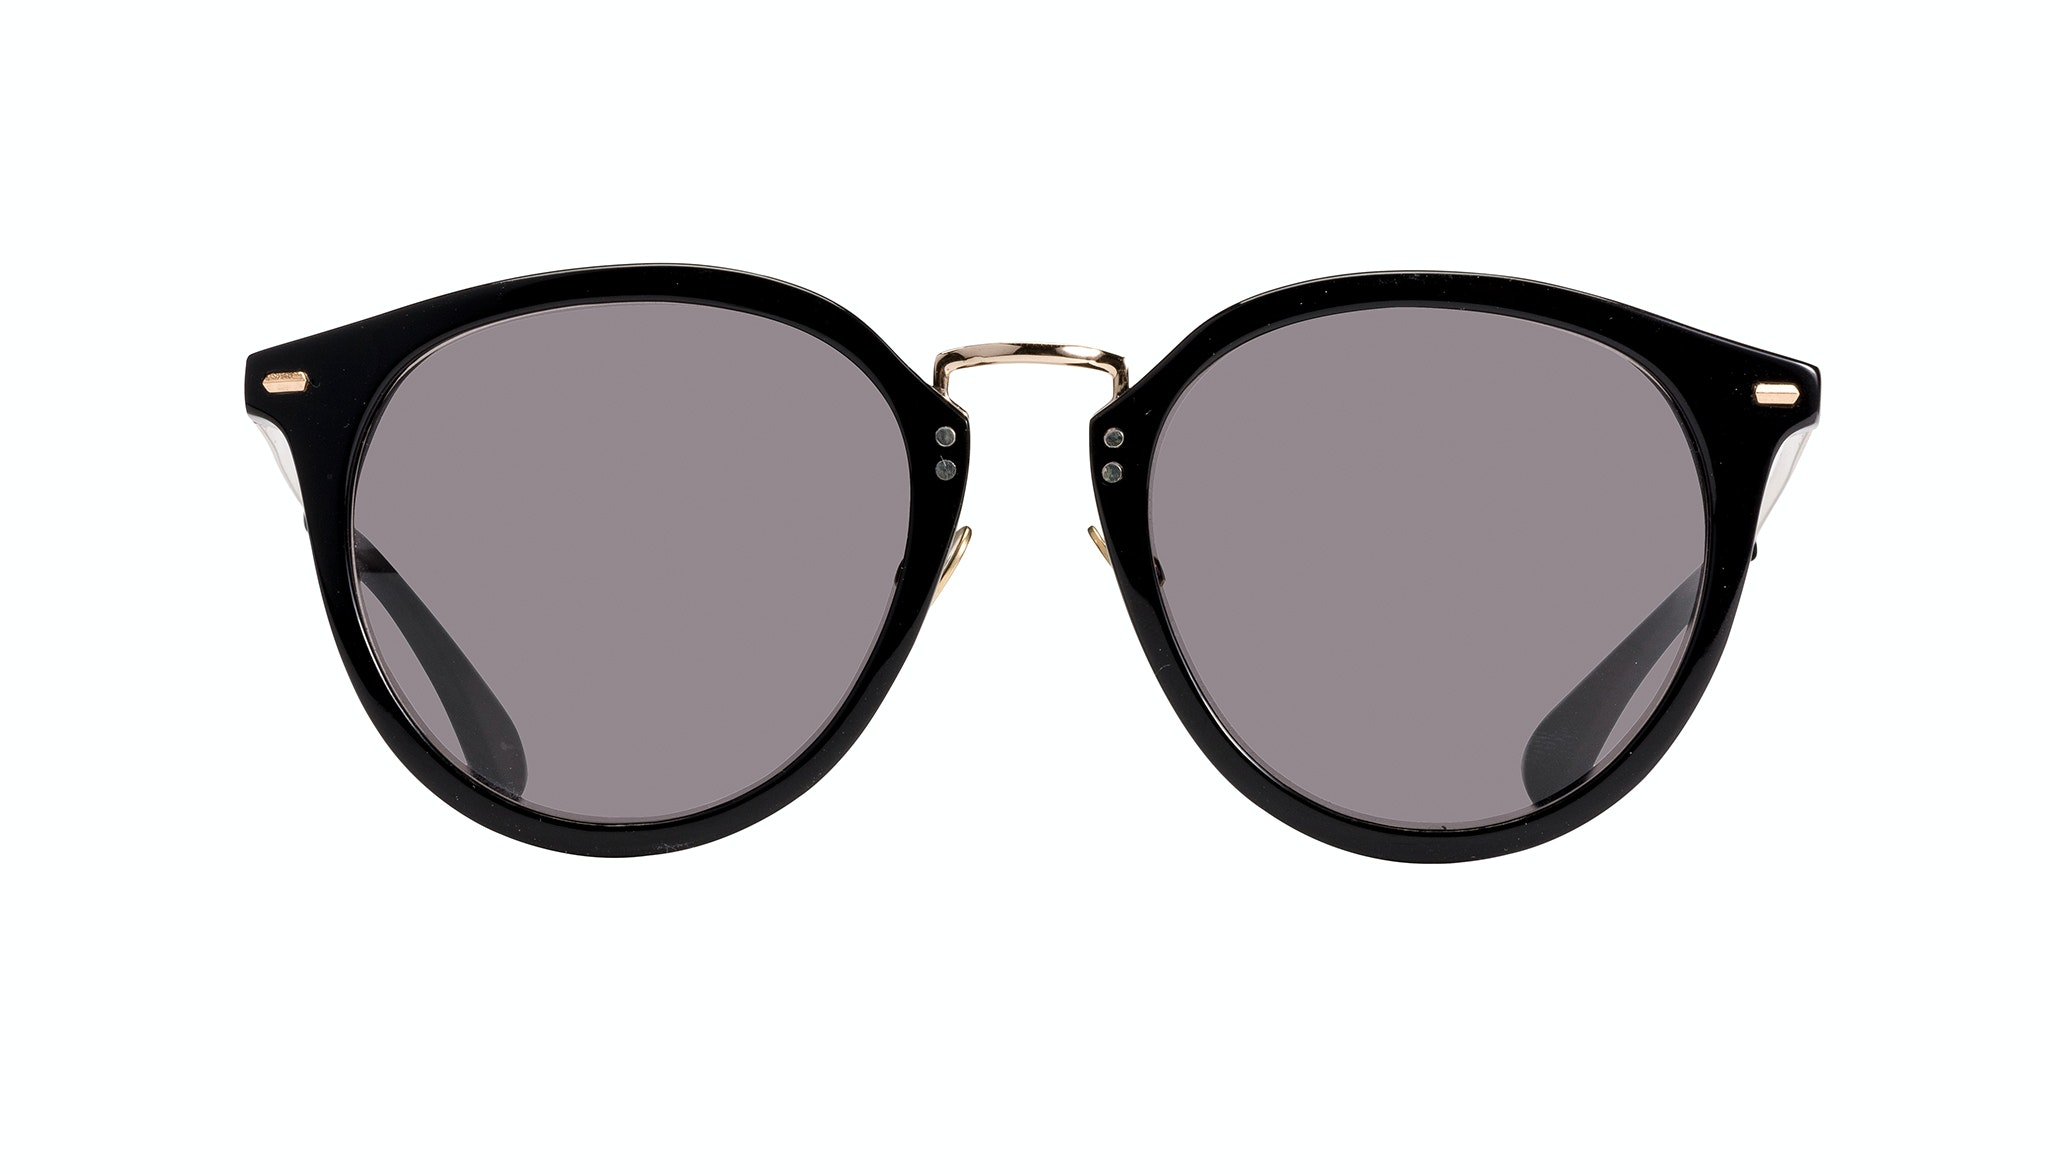 Affordable Fashion Glasses Round Sunglasses Women Poppy Ferris